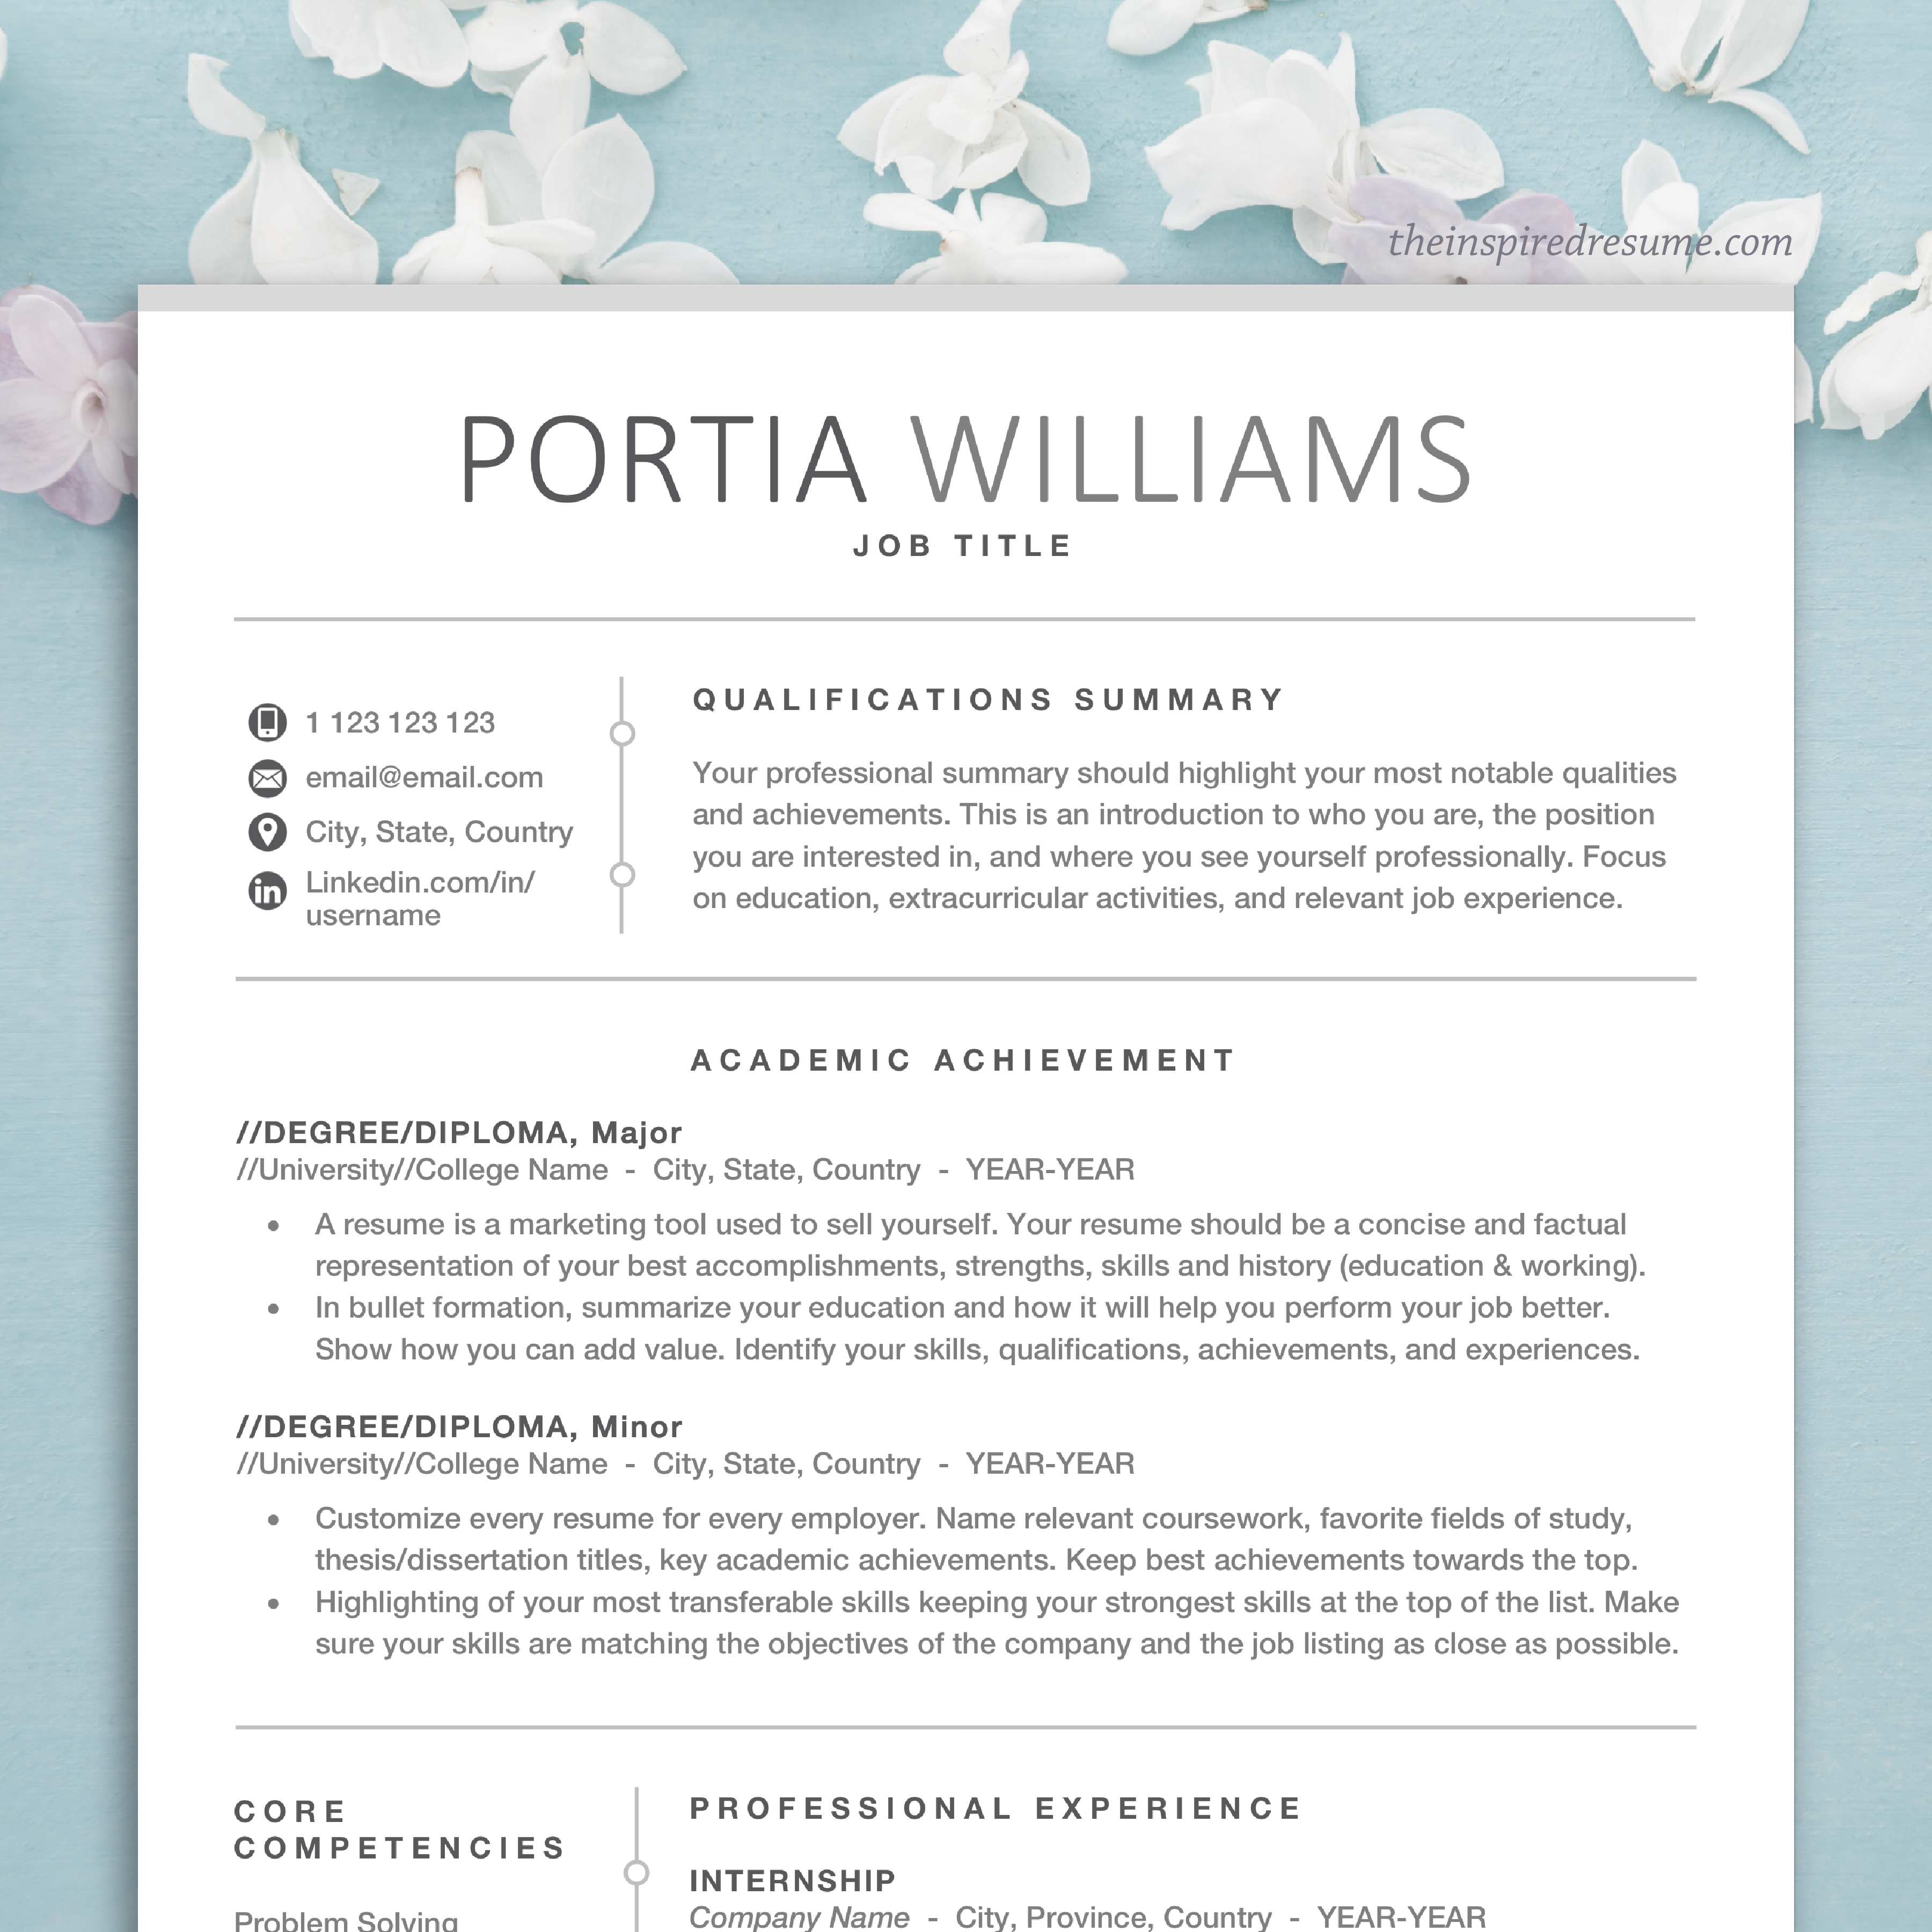 Resume Template College Students, Resumes for High School